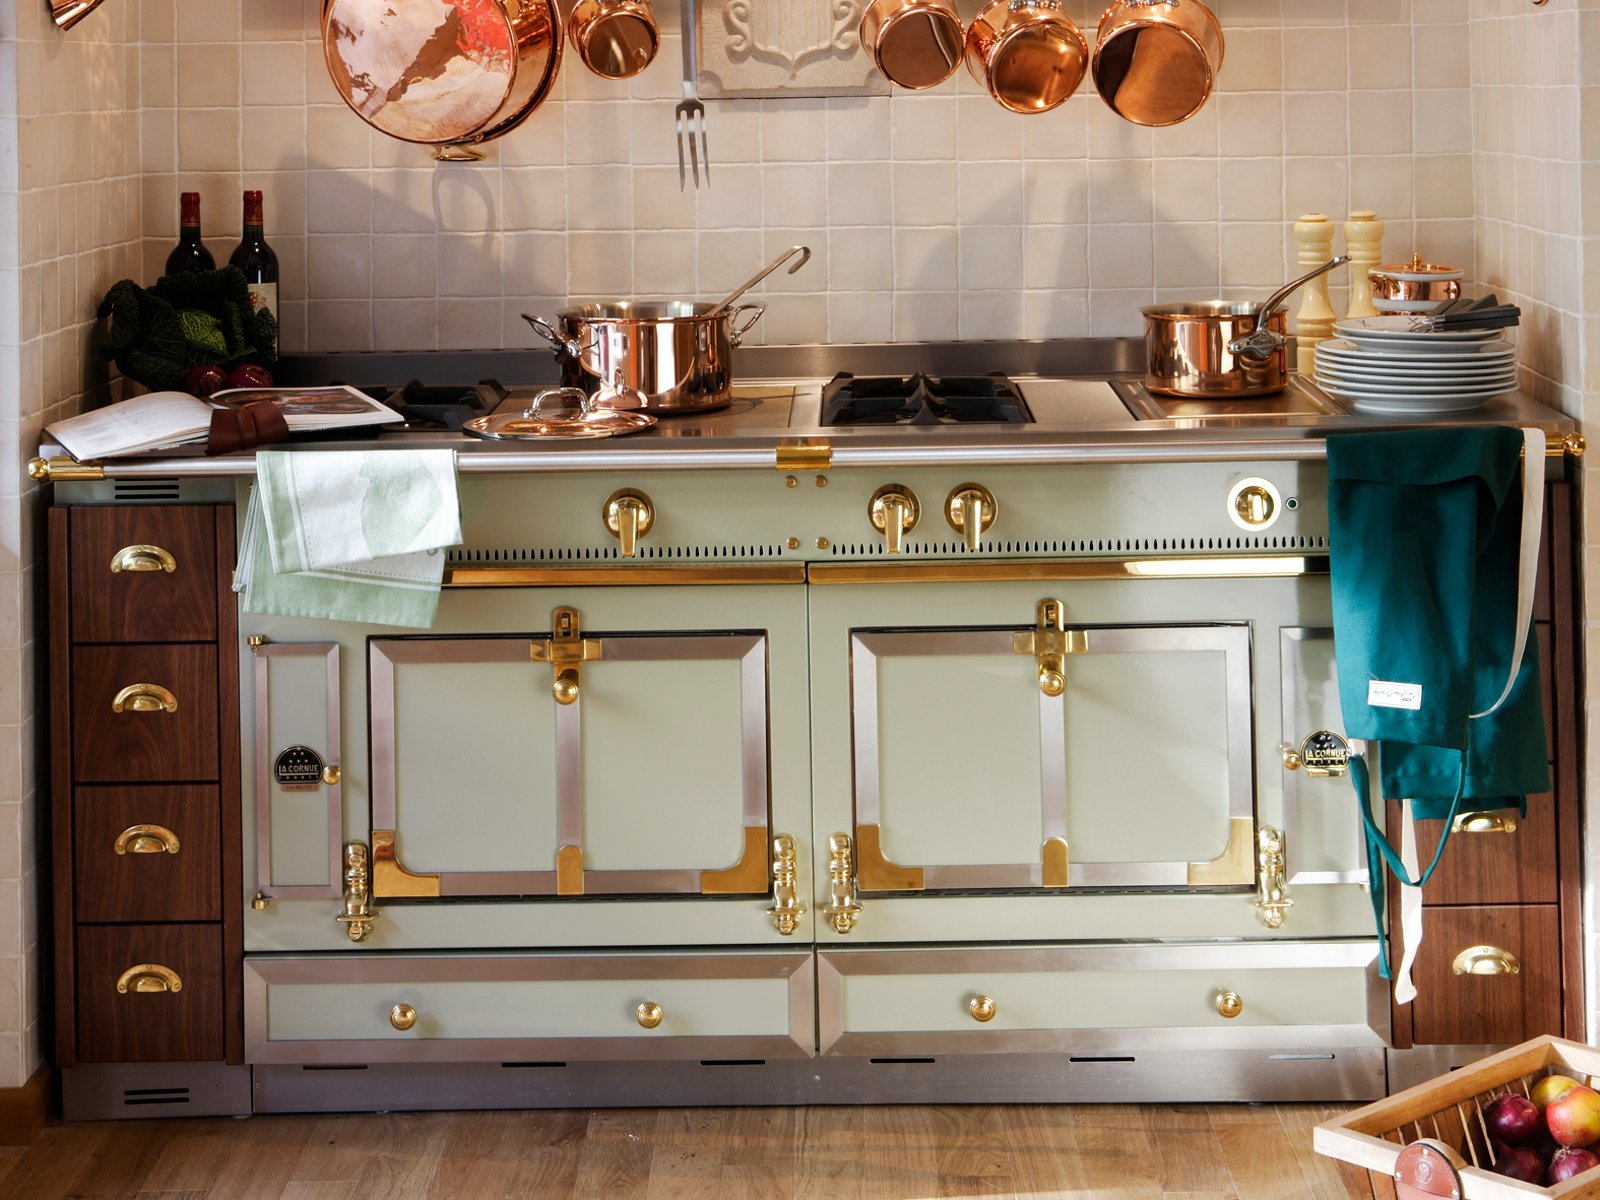 Stainless Steel Ranges In Wood Kitchen